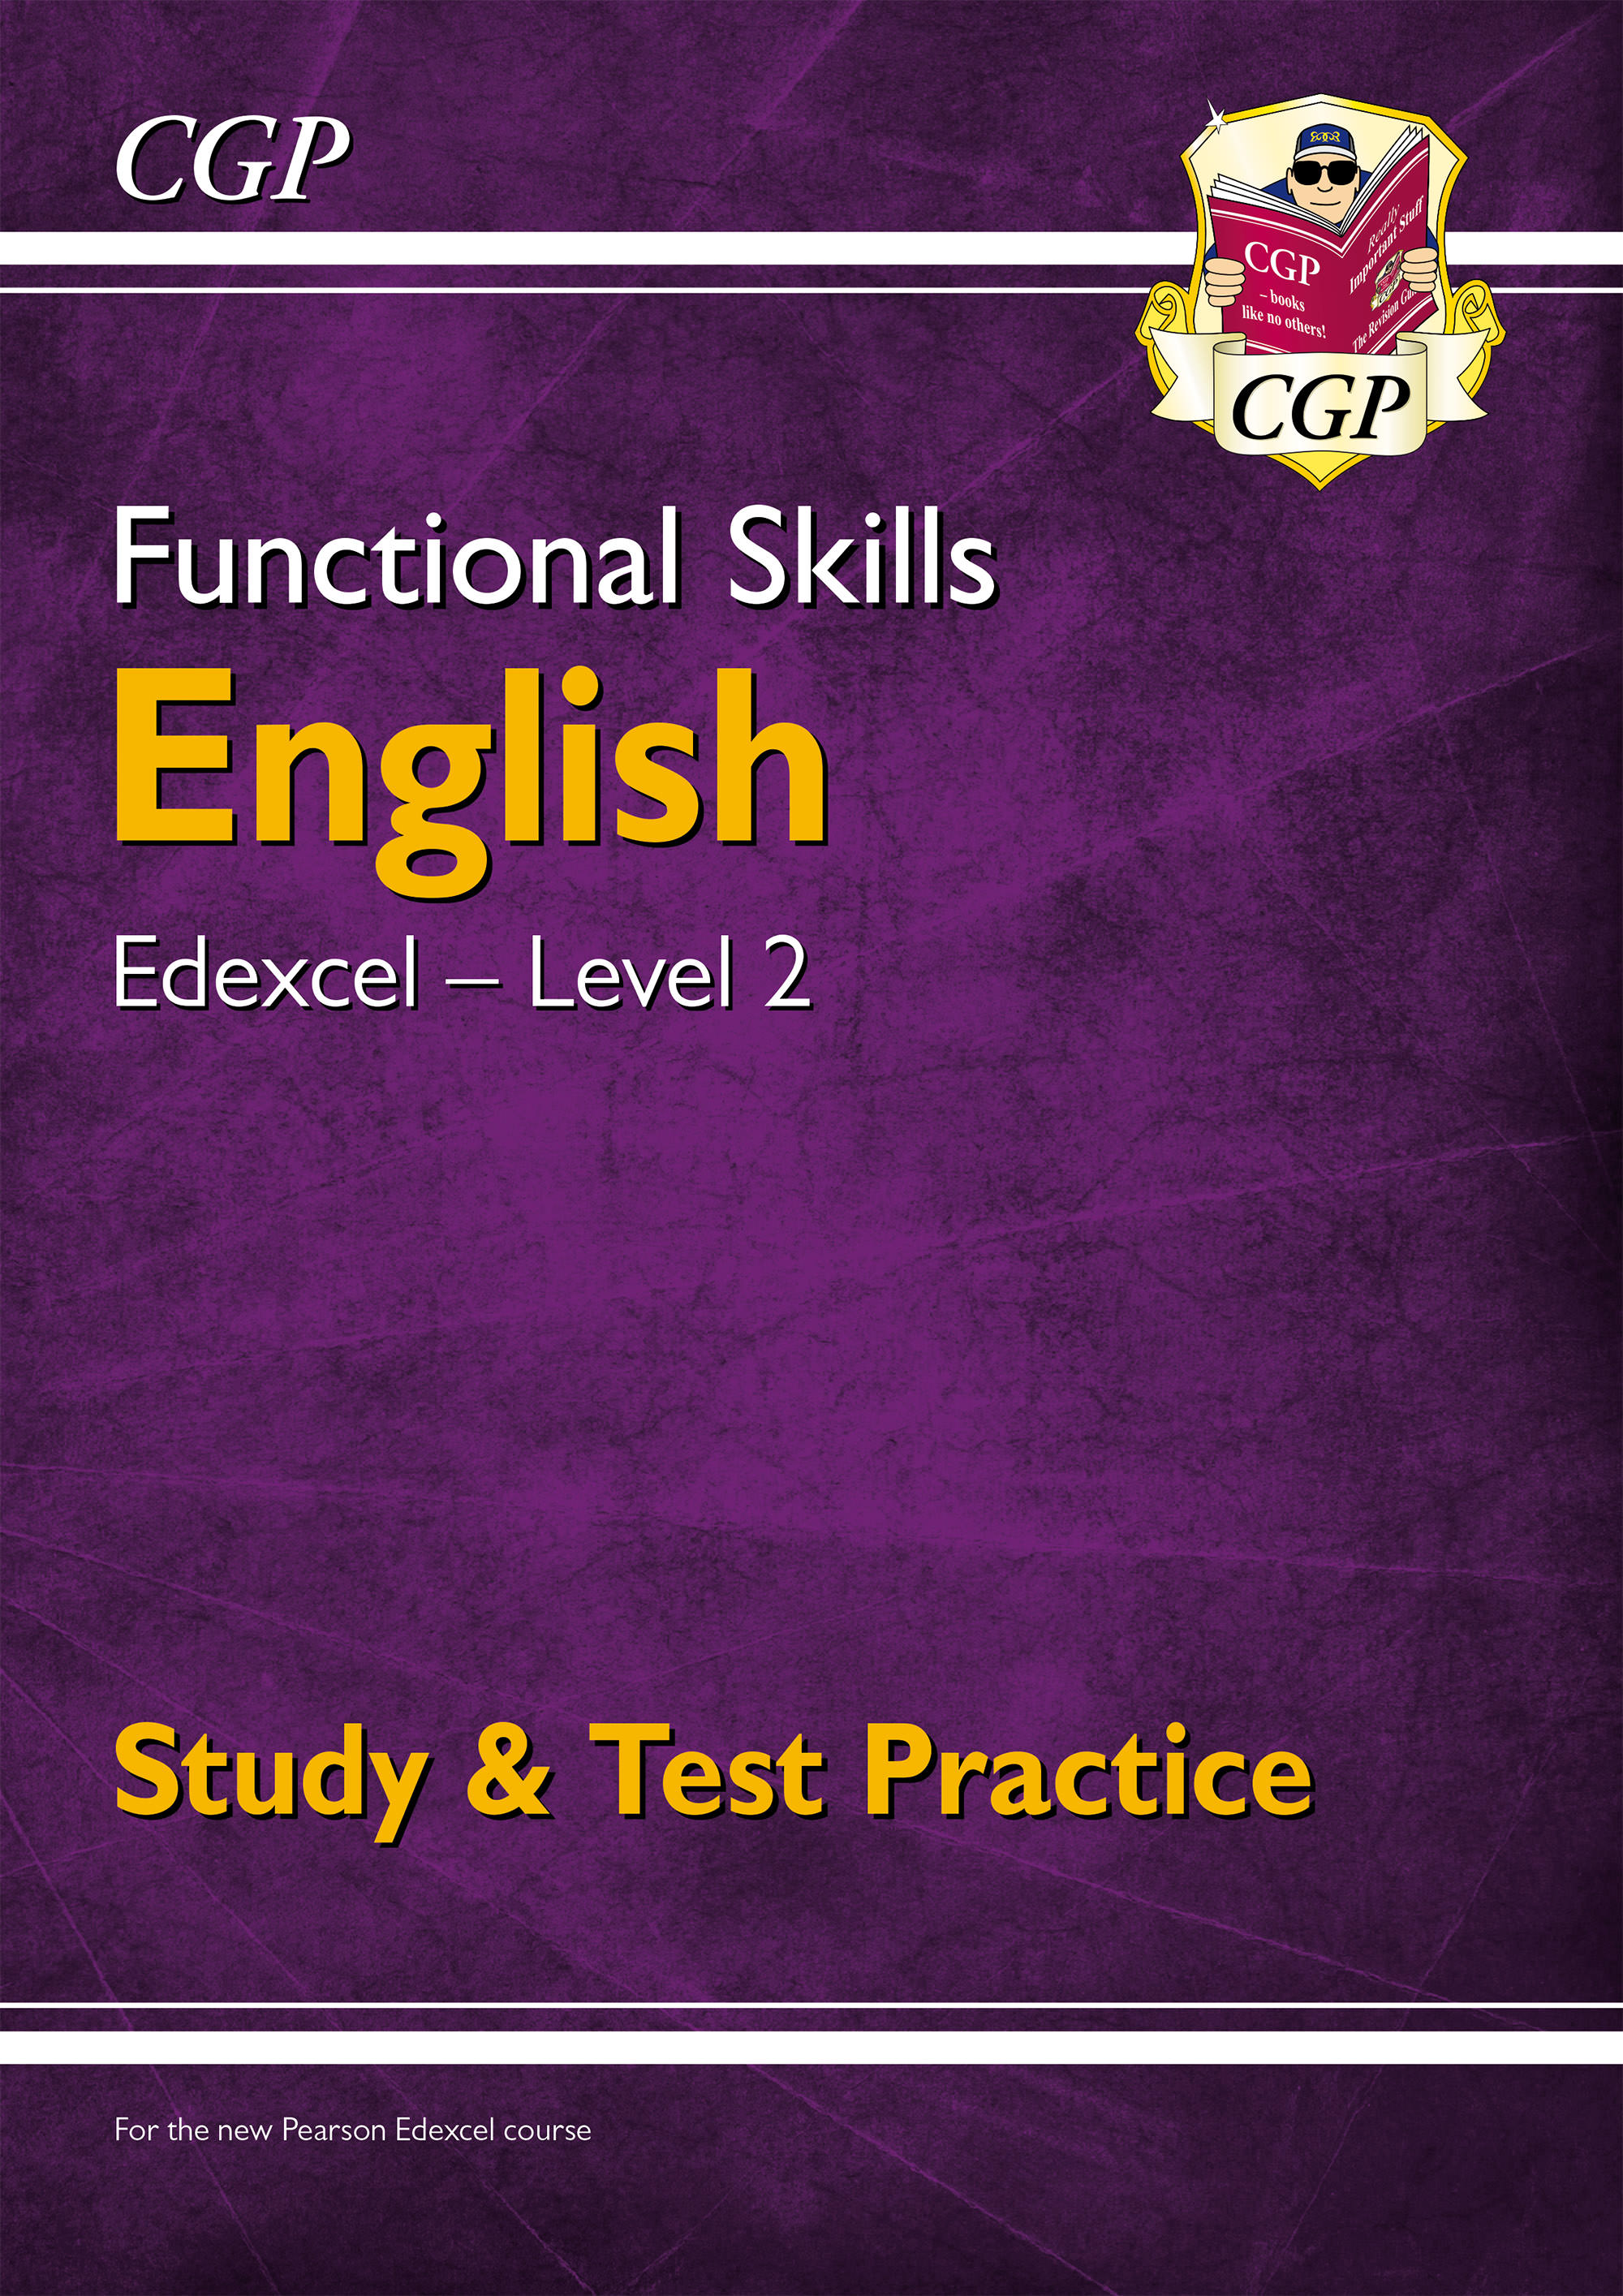 E2ESRA1DK - Functional Skills English: Edexcel Level 2 - Study & Test Practice (for 2021 & beyond)